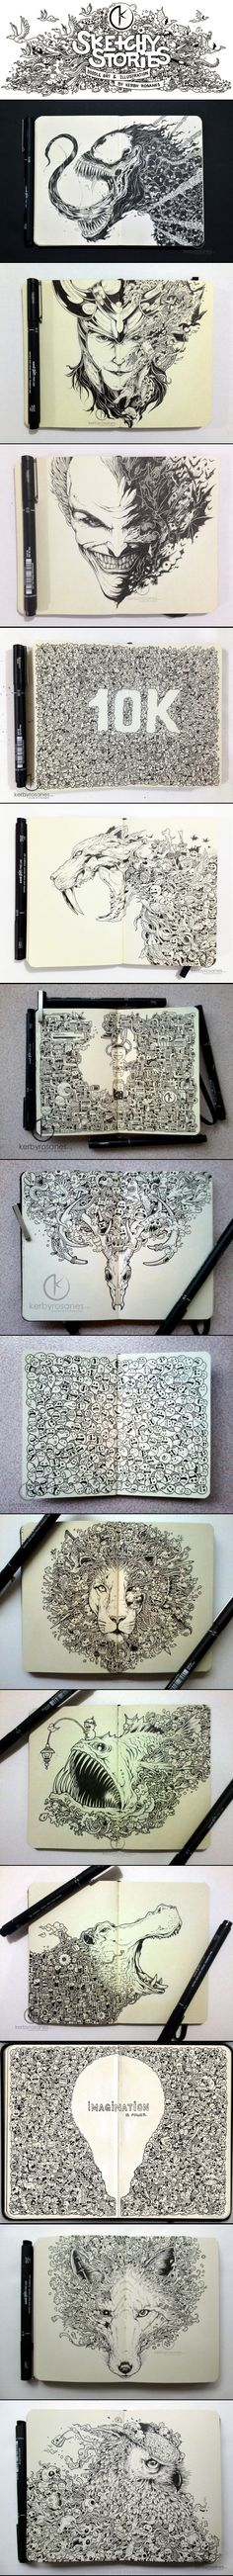 Moleskine sketches by kerby rosanes